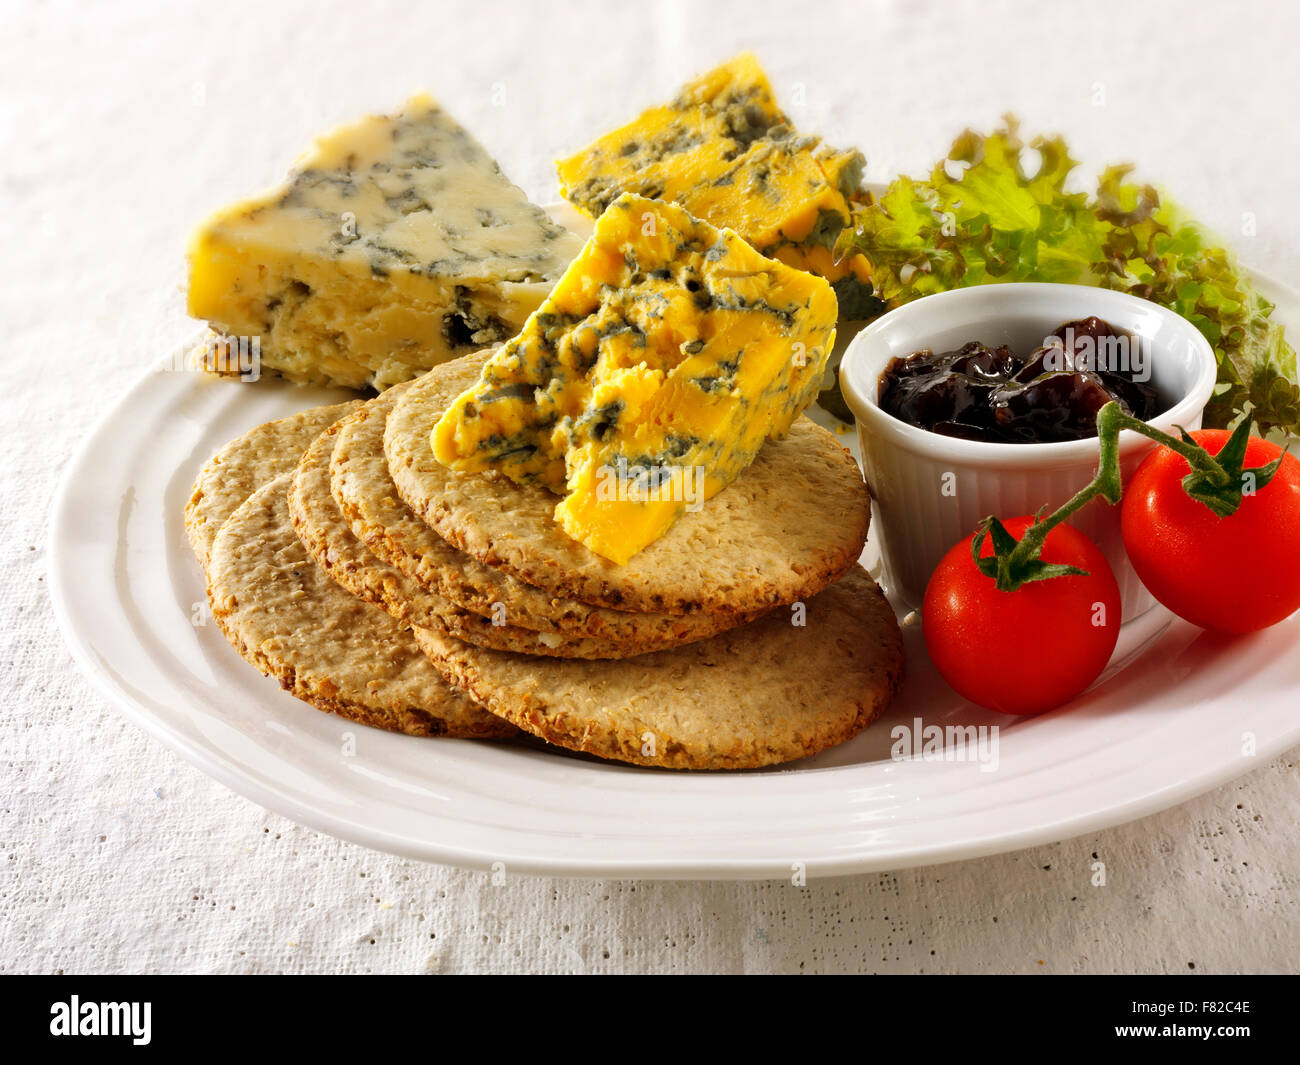 Blue cheese & biscuits with stilton, white stilton & blacksticks cheese. Served on a plate - Stock Image